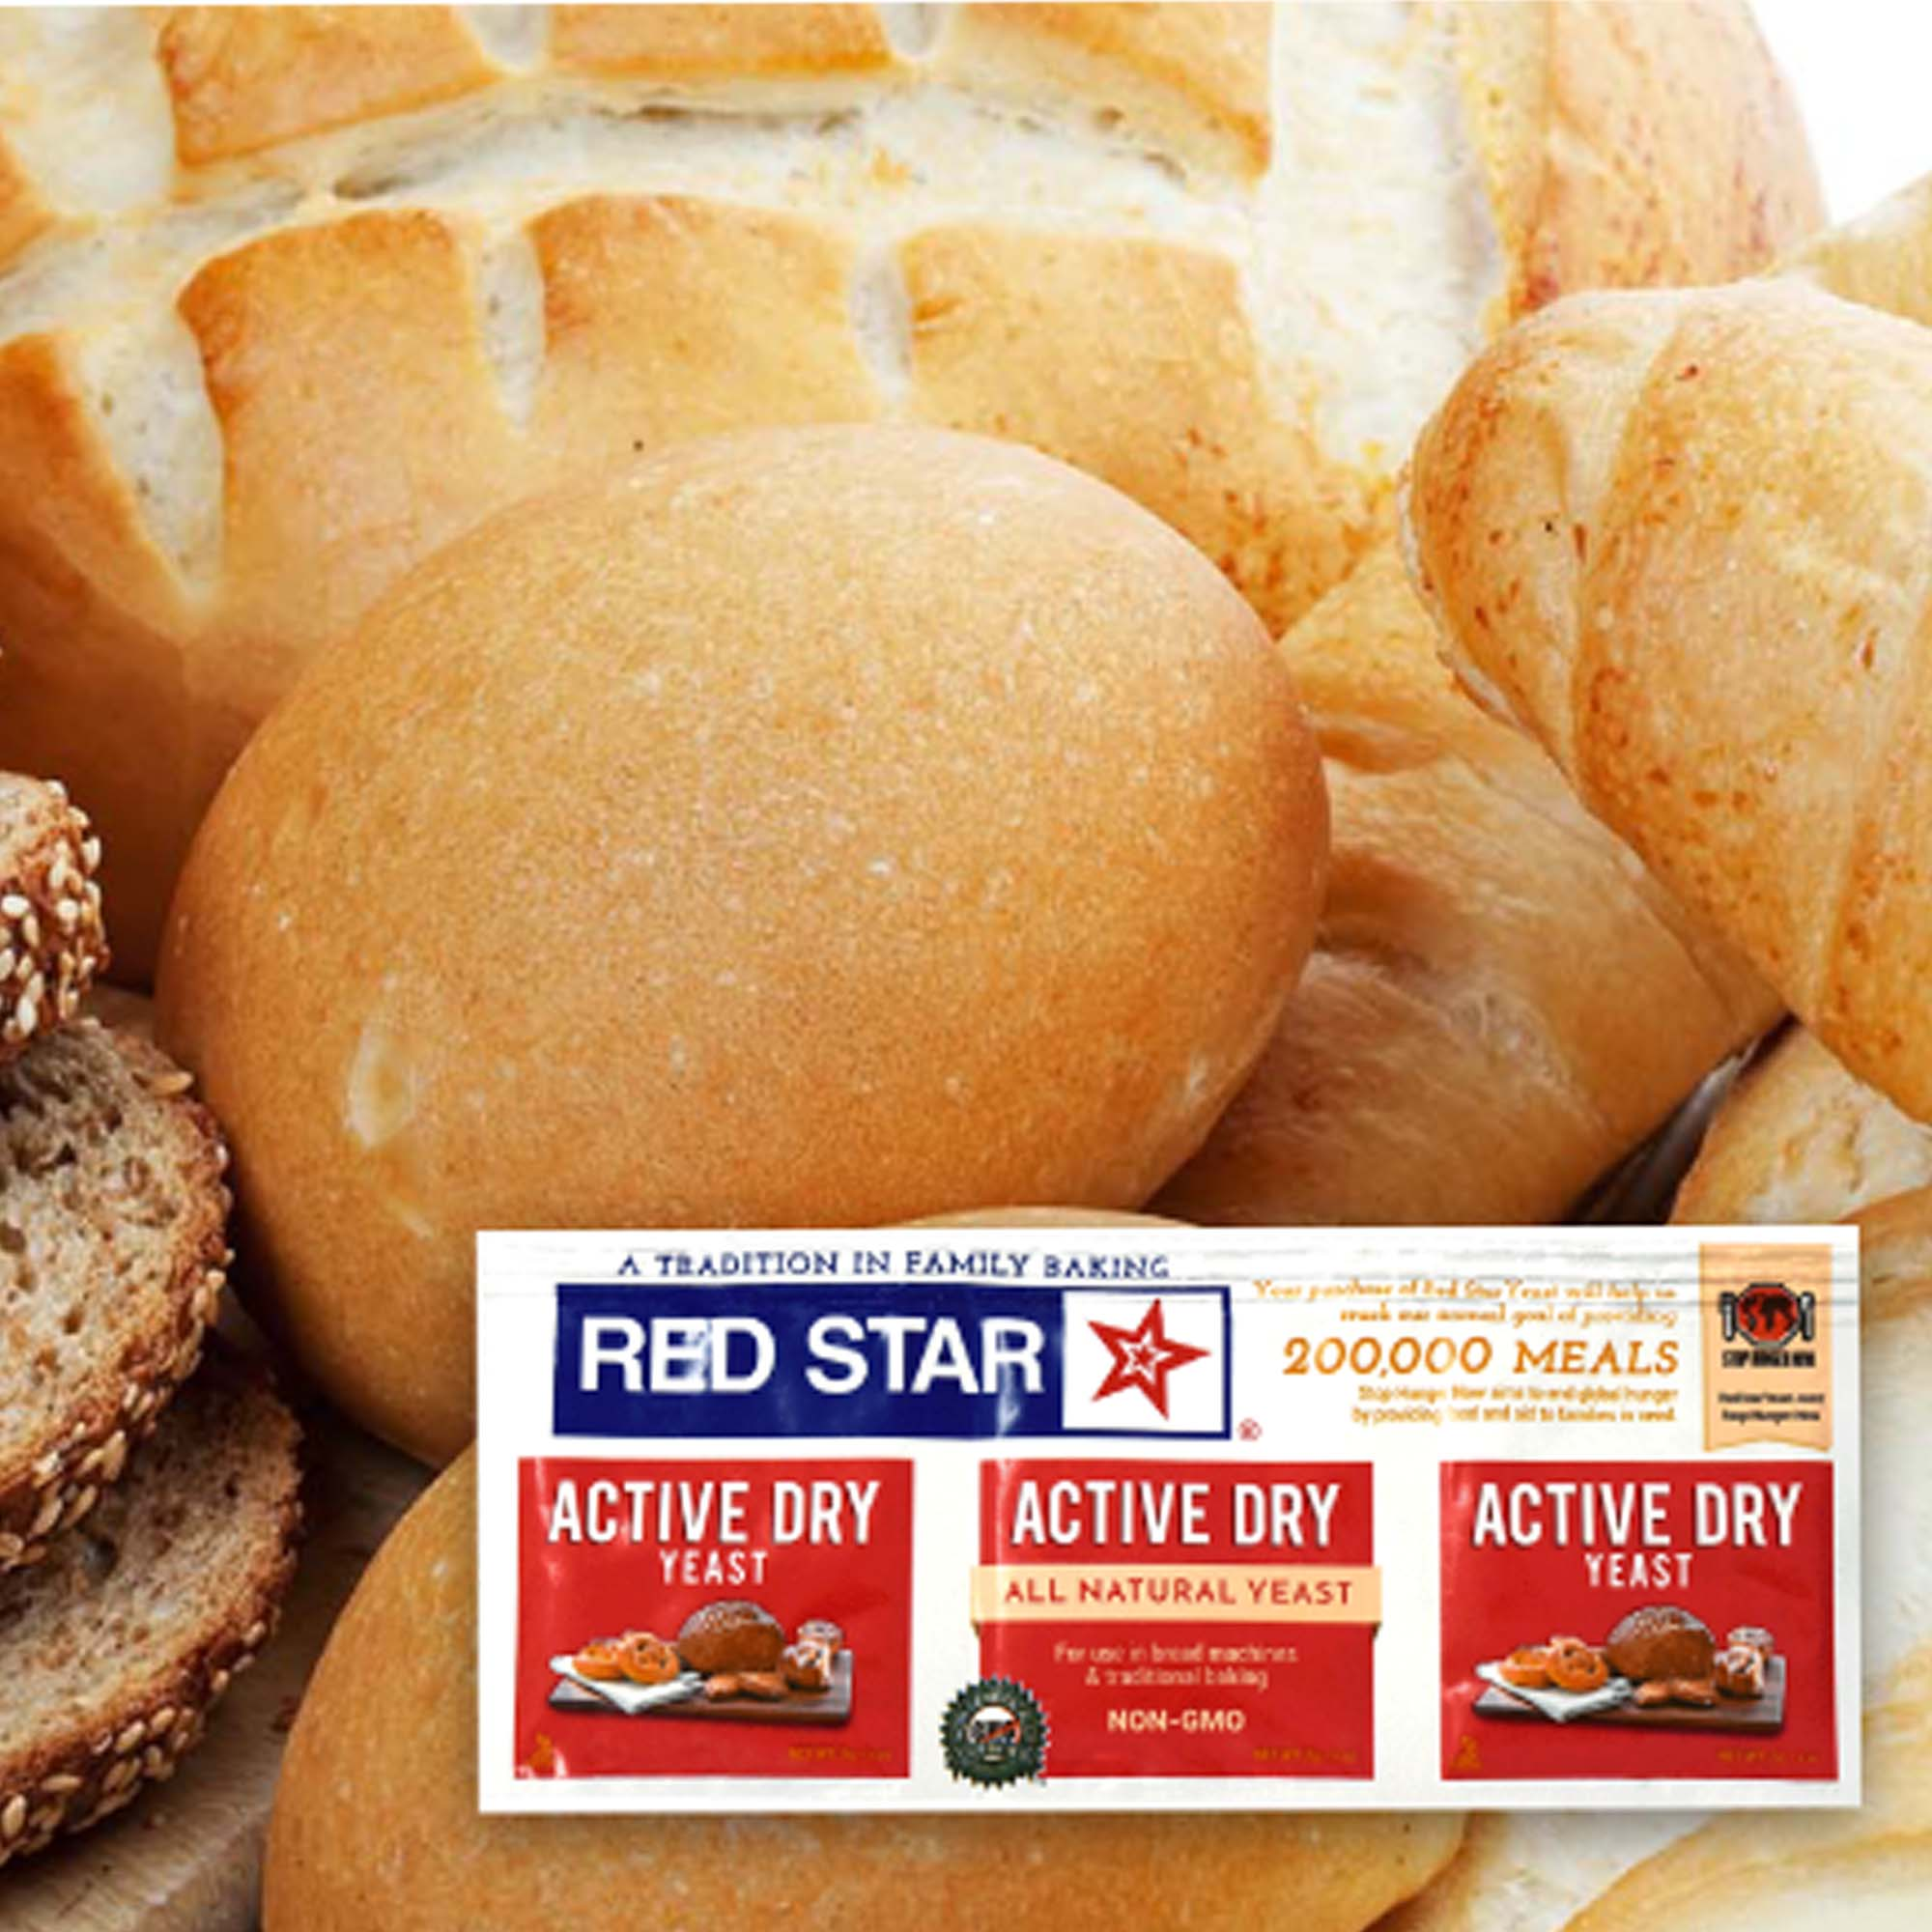 red white and blue packaging, red star logo woth information about active dry yeast. in the background are various types of breads and loaves